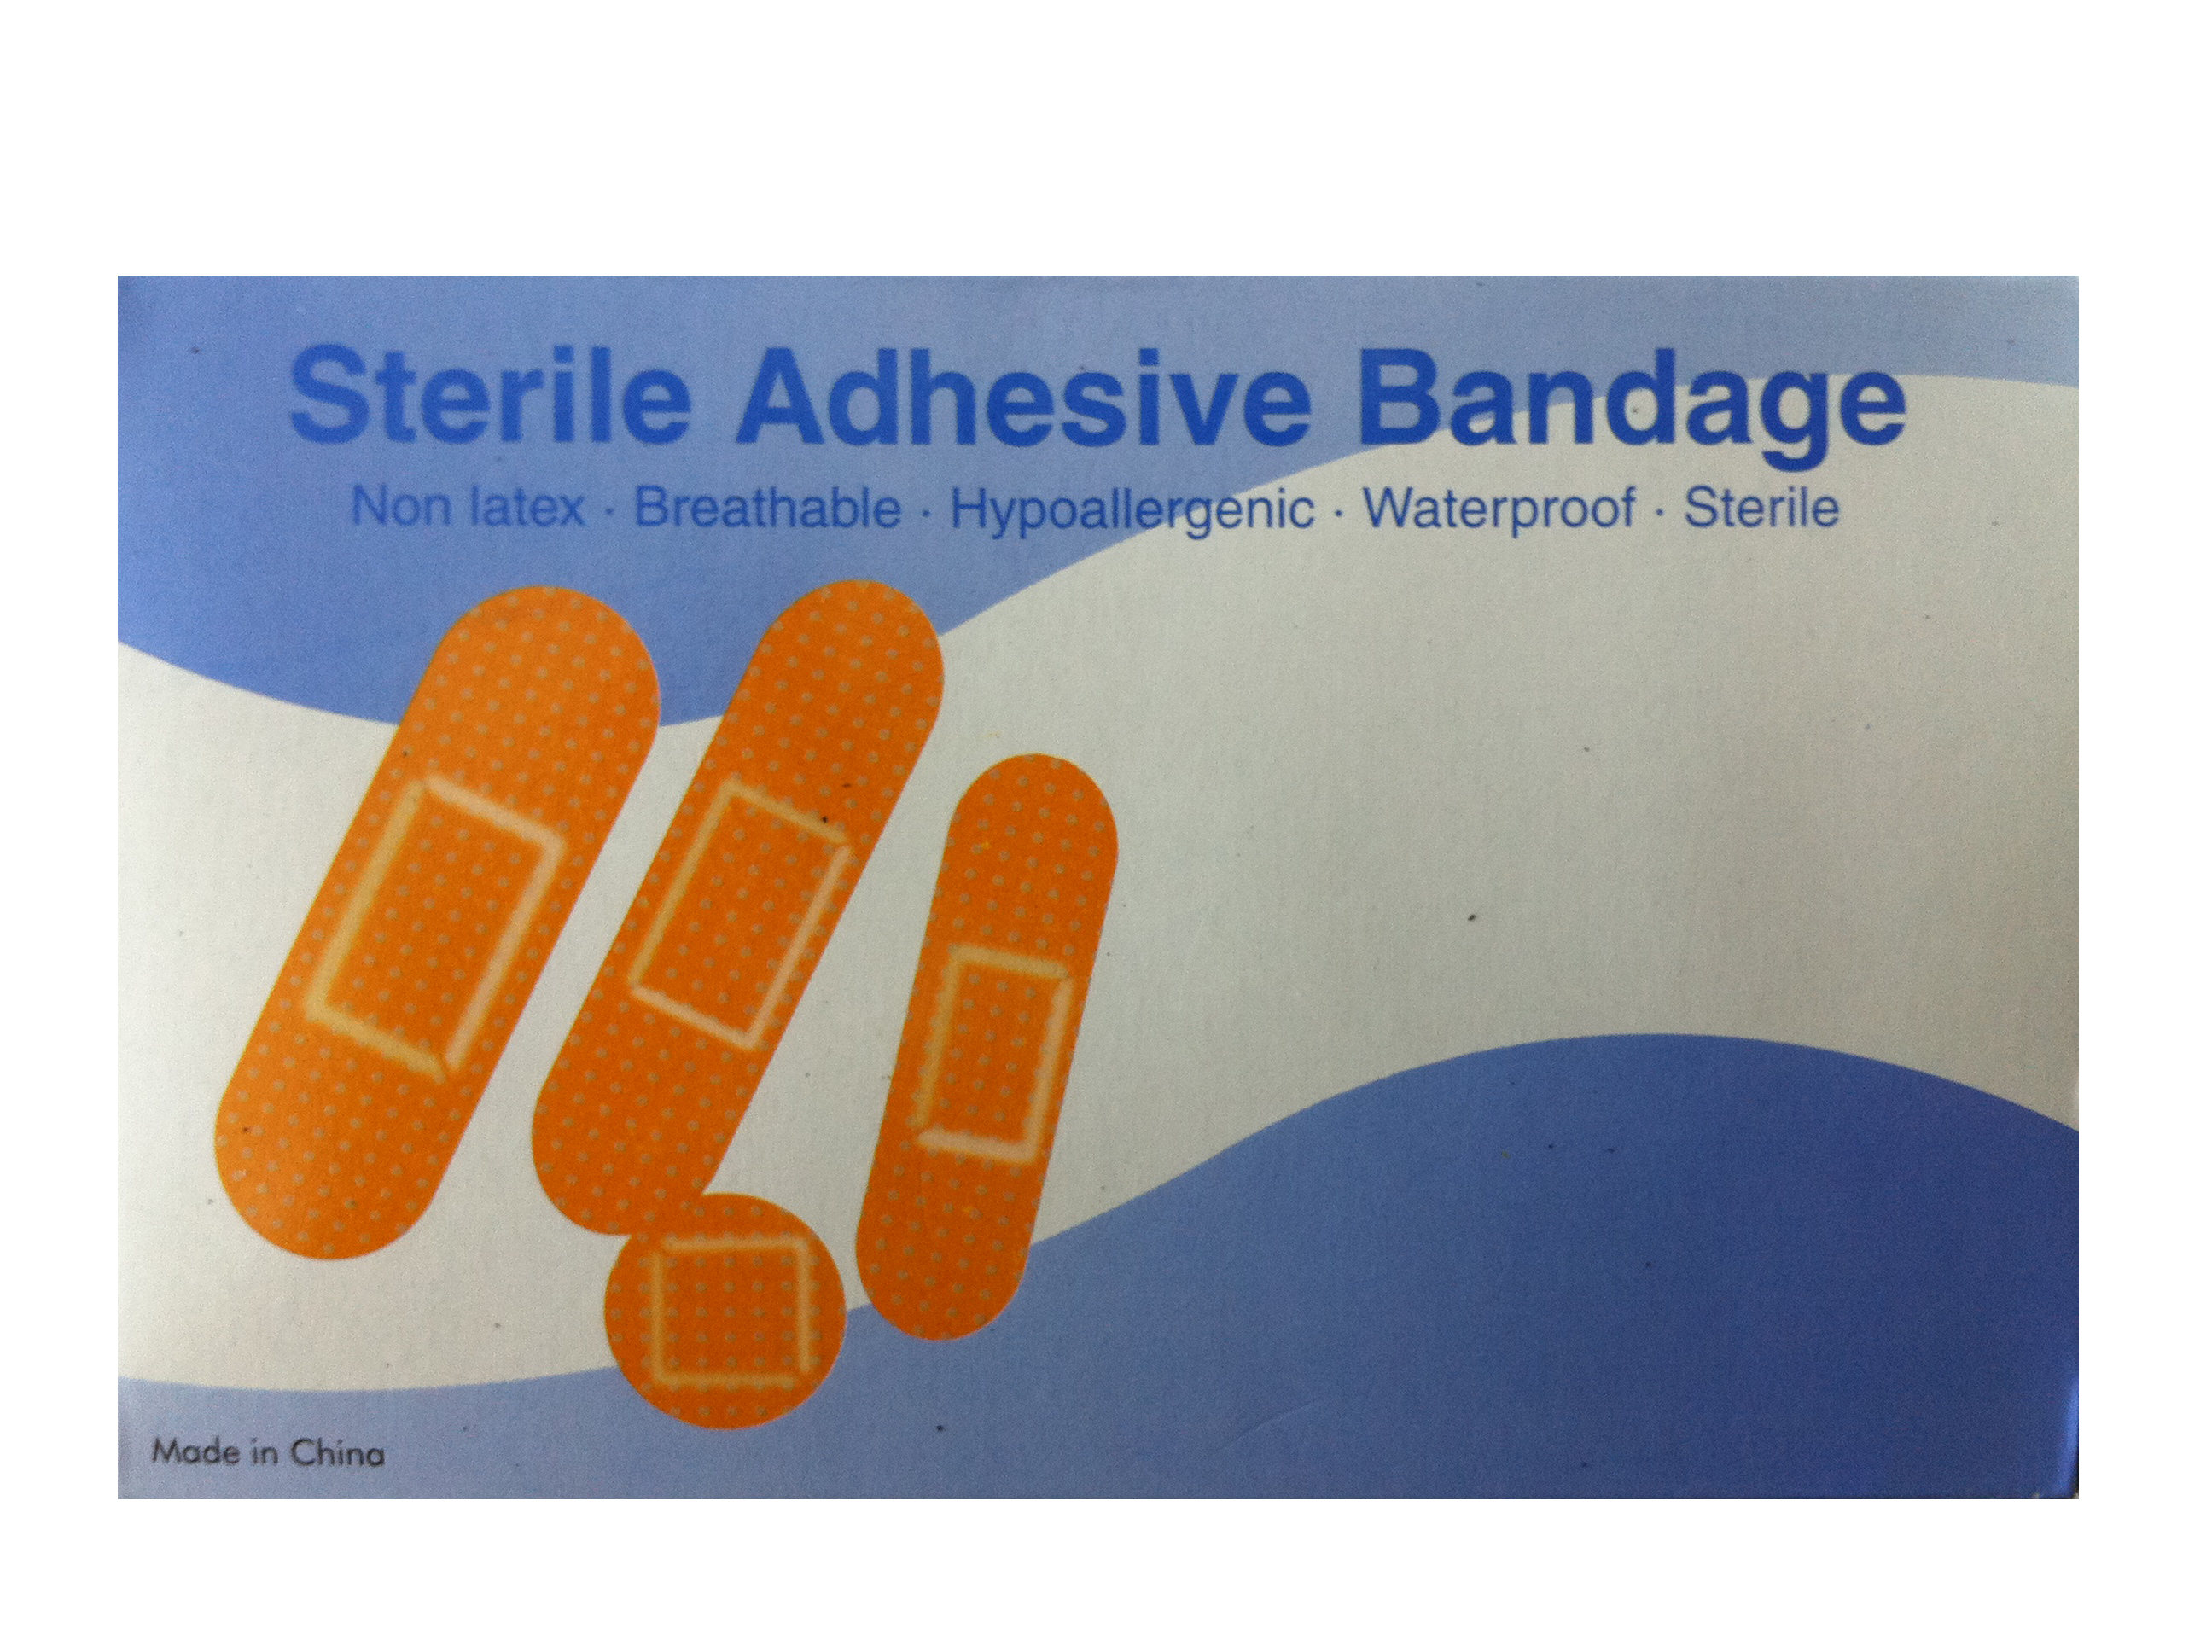 1x3 Plastic Strip Bandage: Box of 100 image